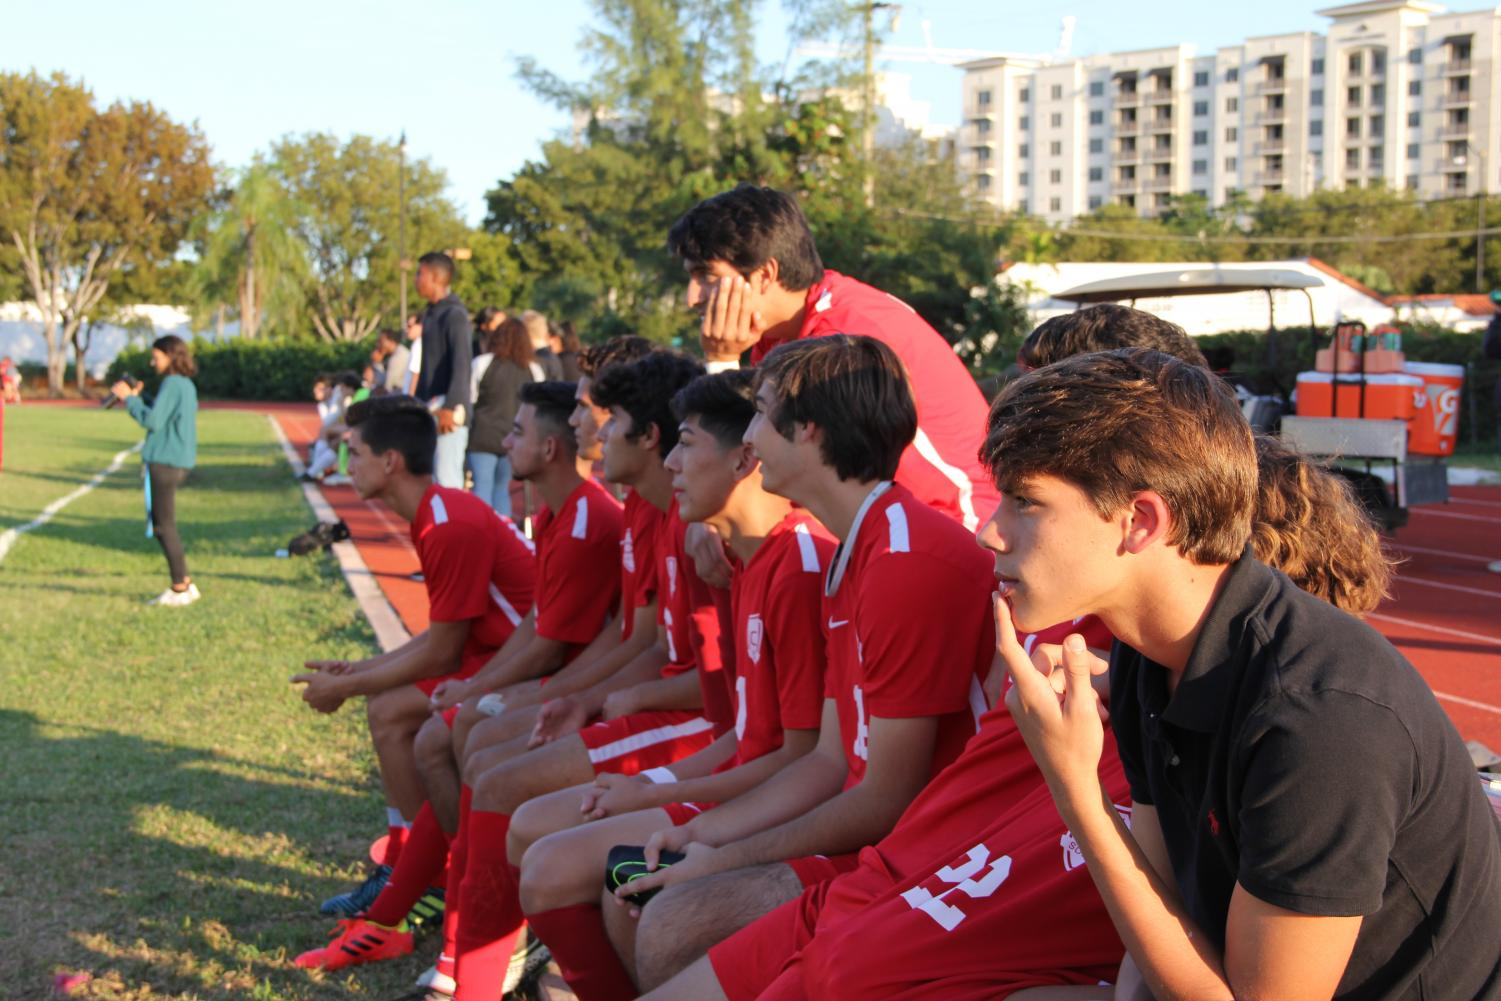 Cavalier Soccer players watching their teammates play from the sidelines.